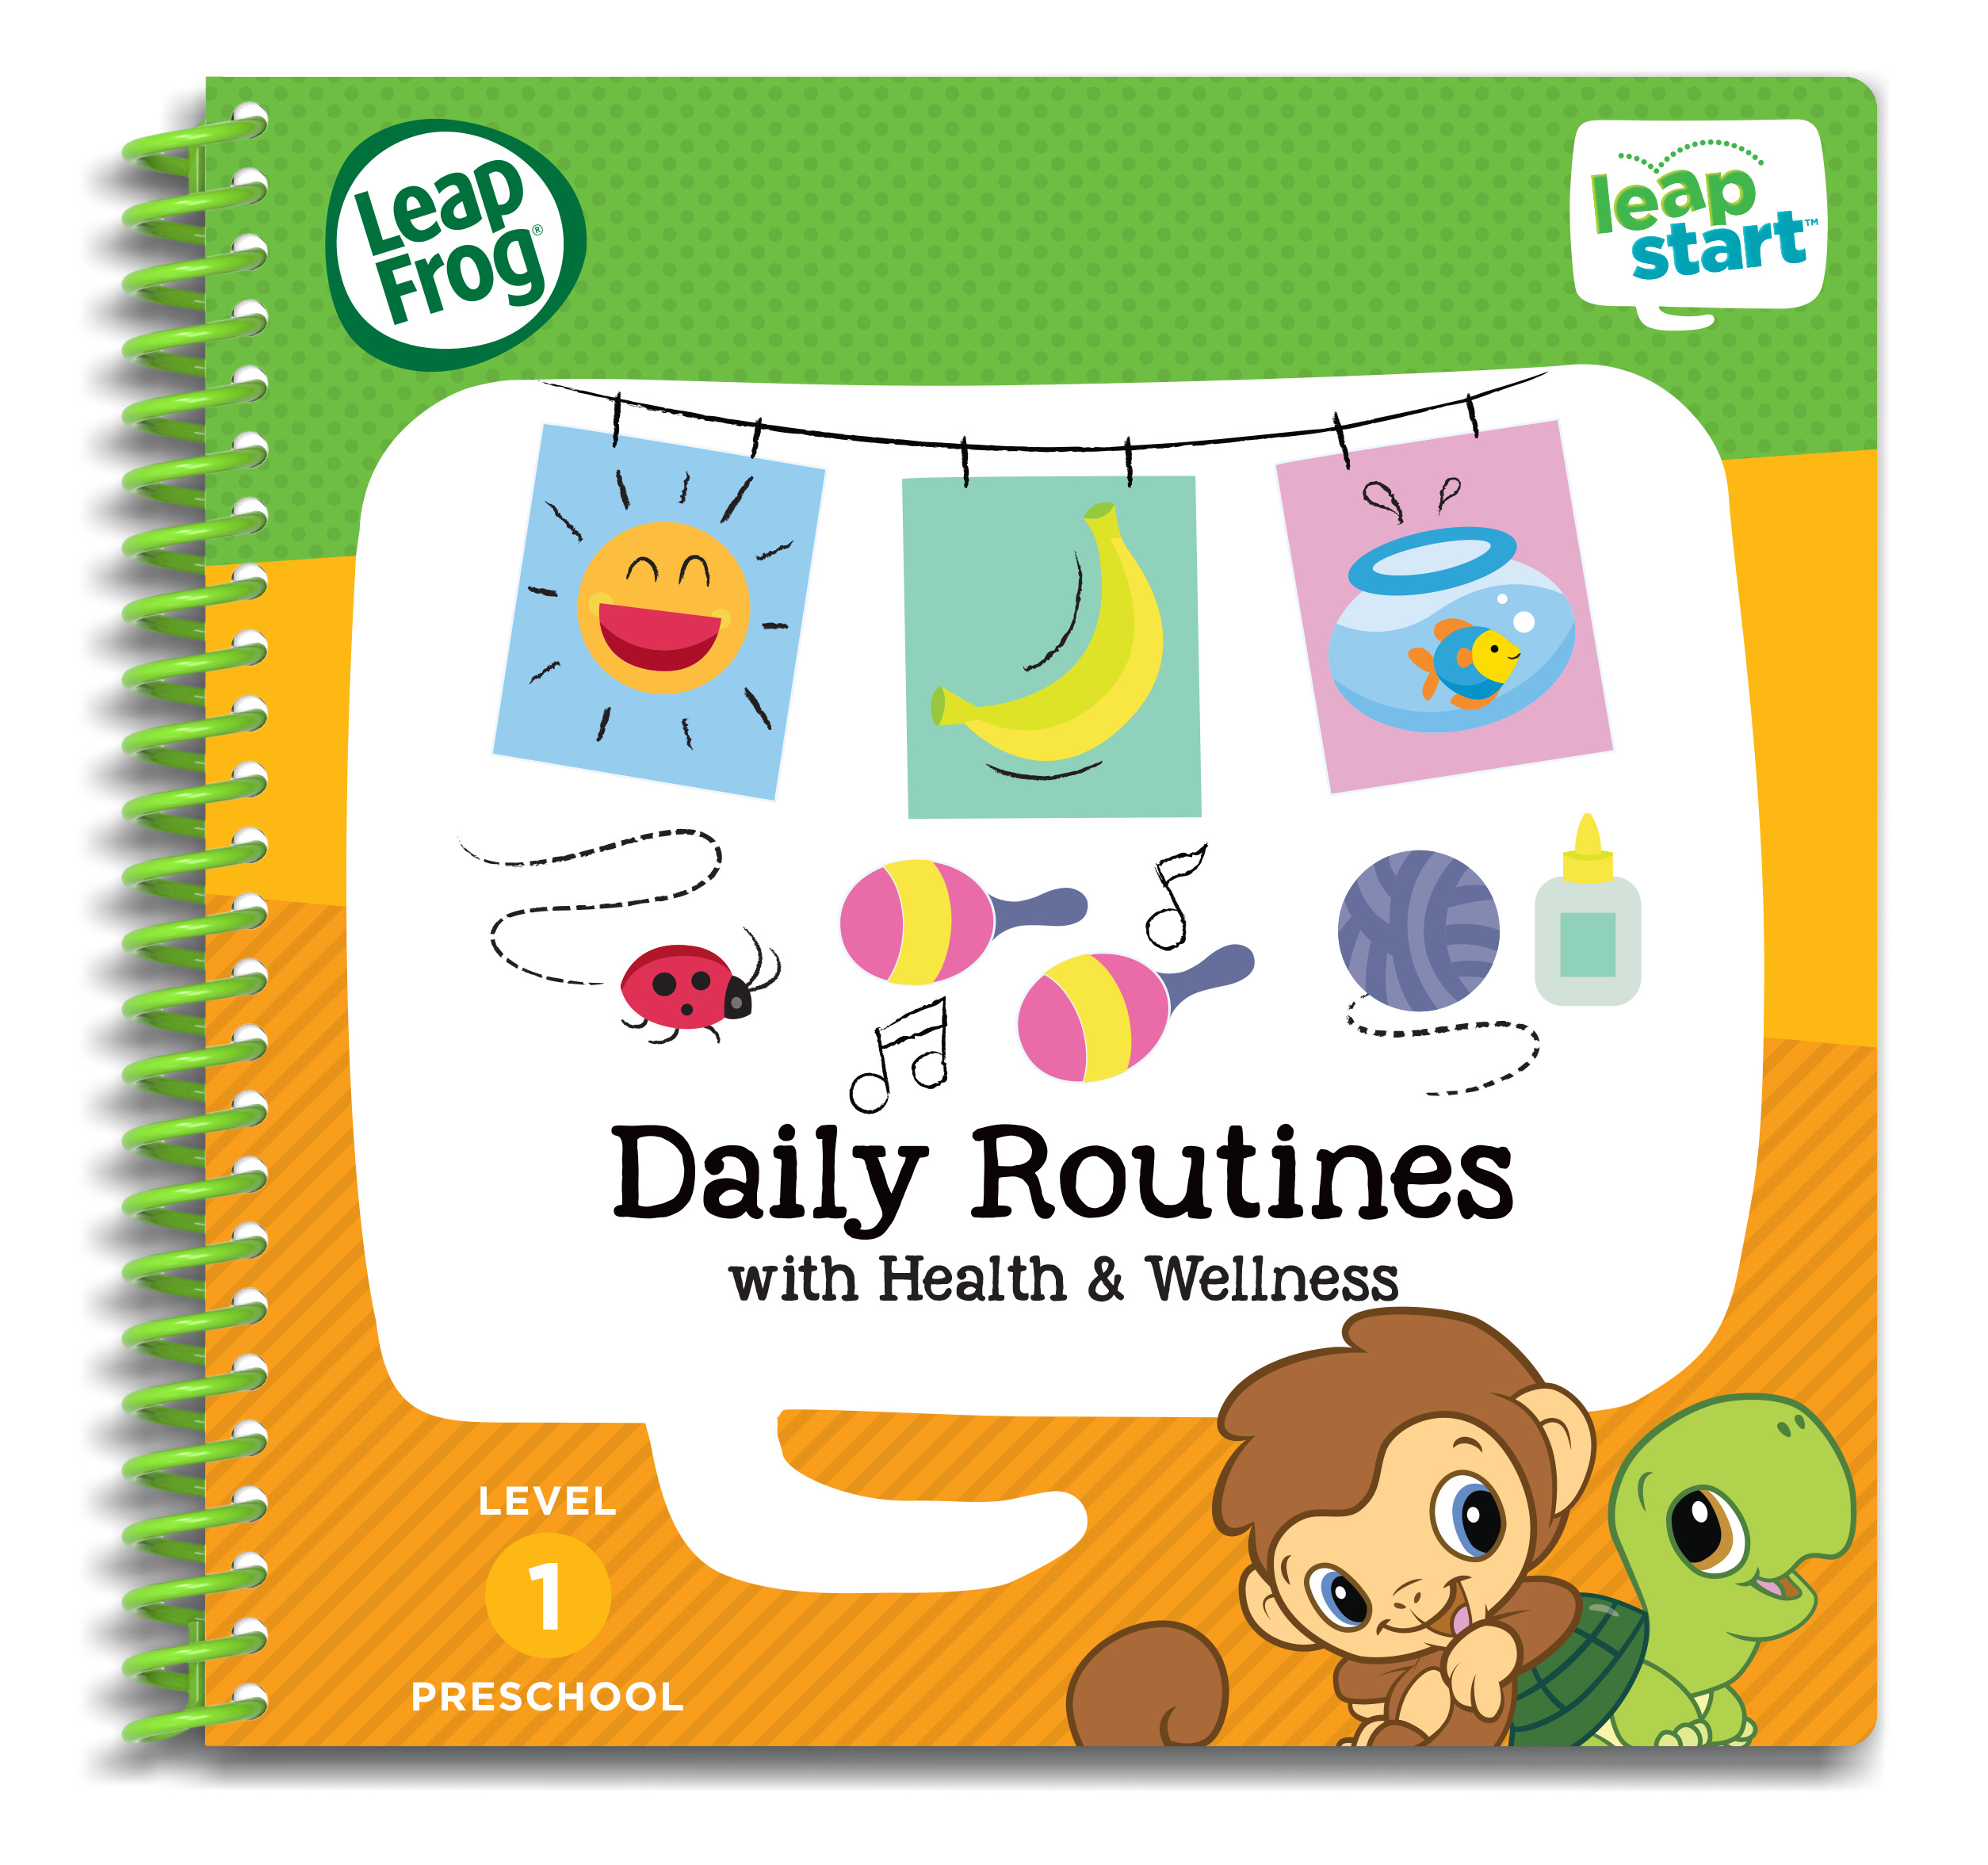 LeapFrog LeapStart Preschool Daily Routines Activity Book by LeapFrog®